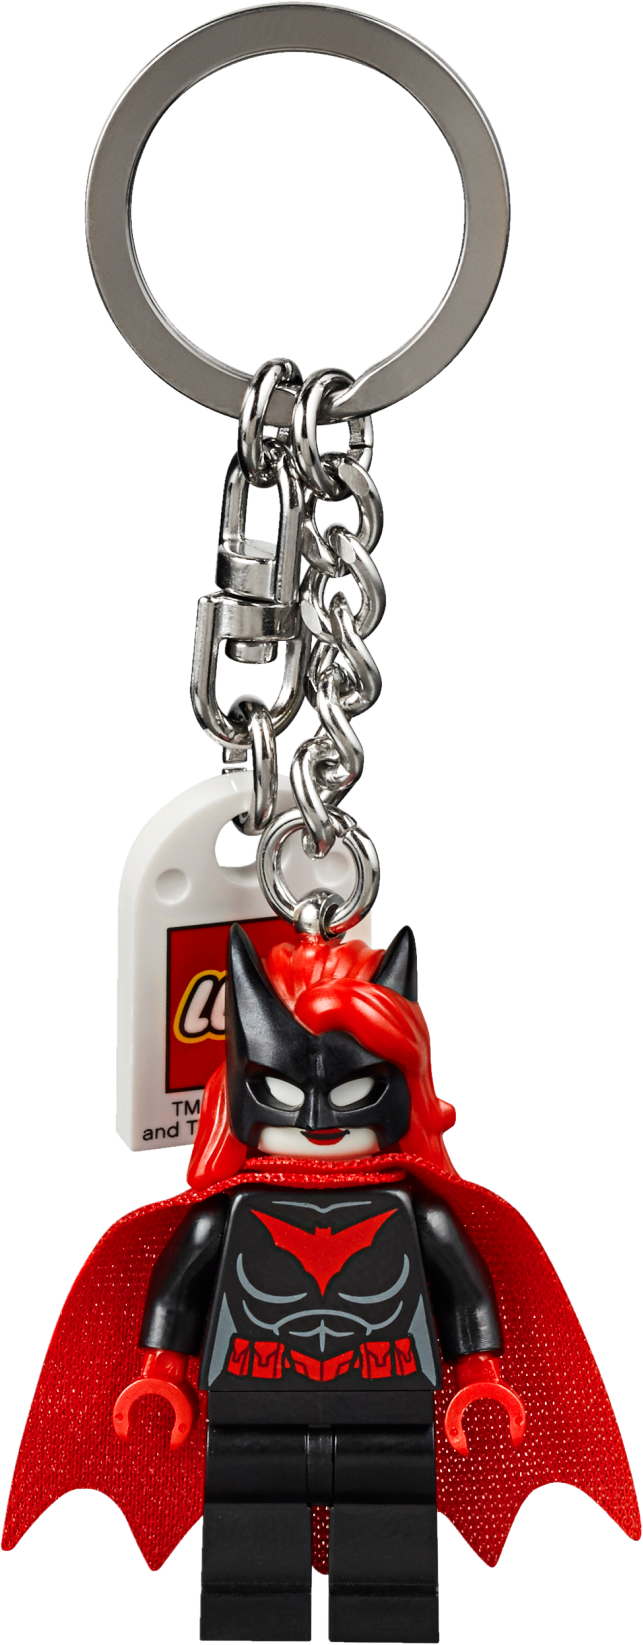 "Batwoman"" Key Chain"